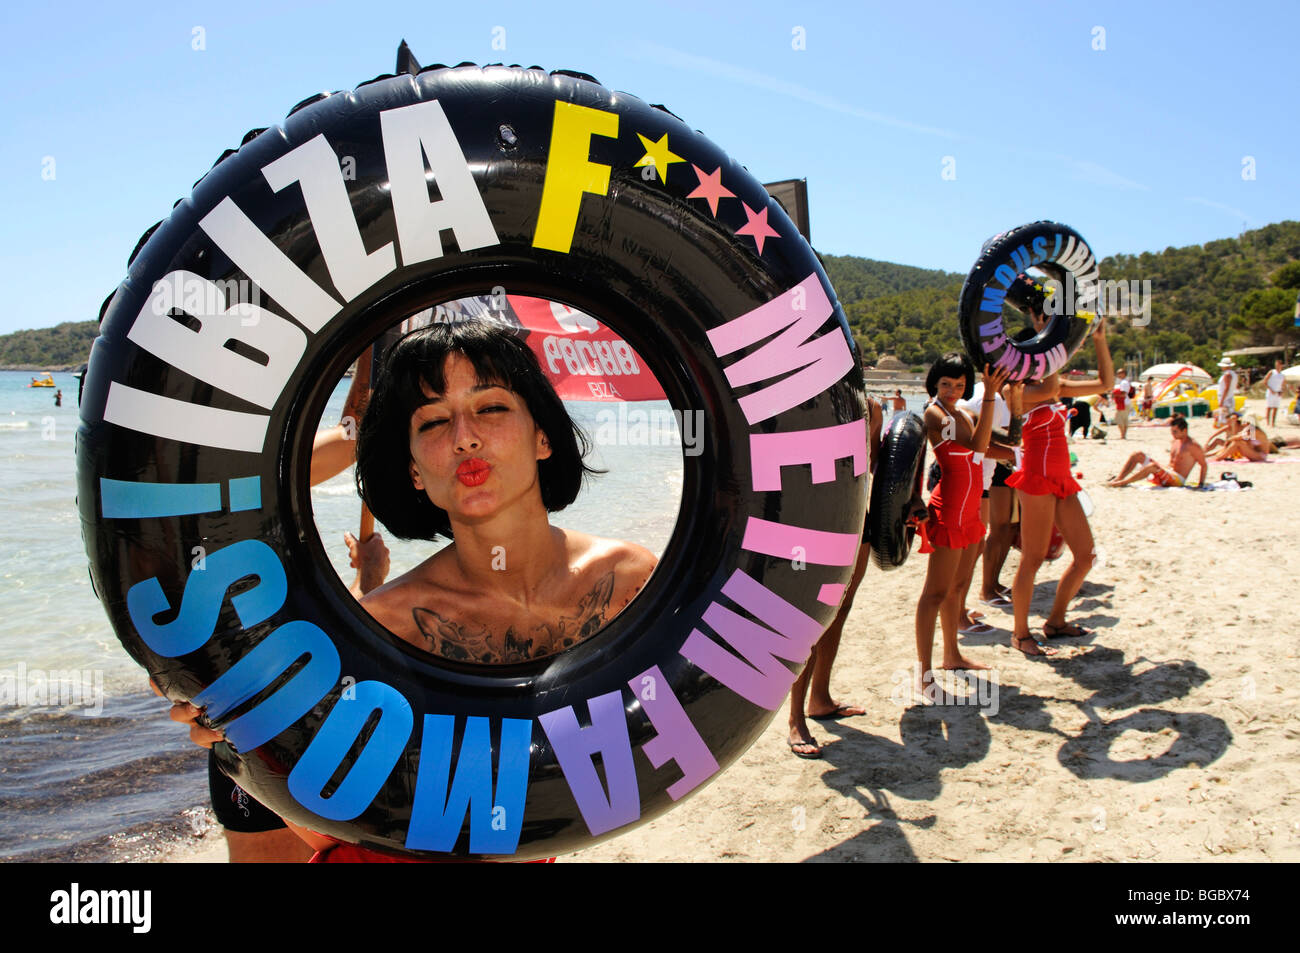 Promoters for the Pacha discotheque, Cala de Ses Salines, Ibiza, Pine Islands, Balearic Islands, Spain, Europe - Stock Image